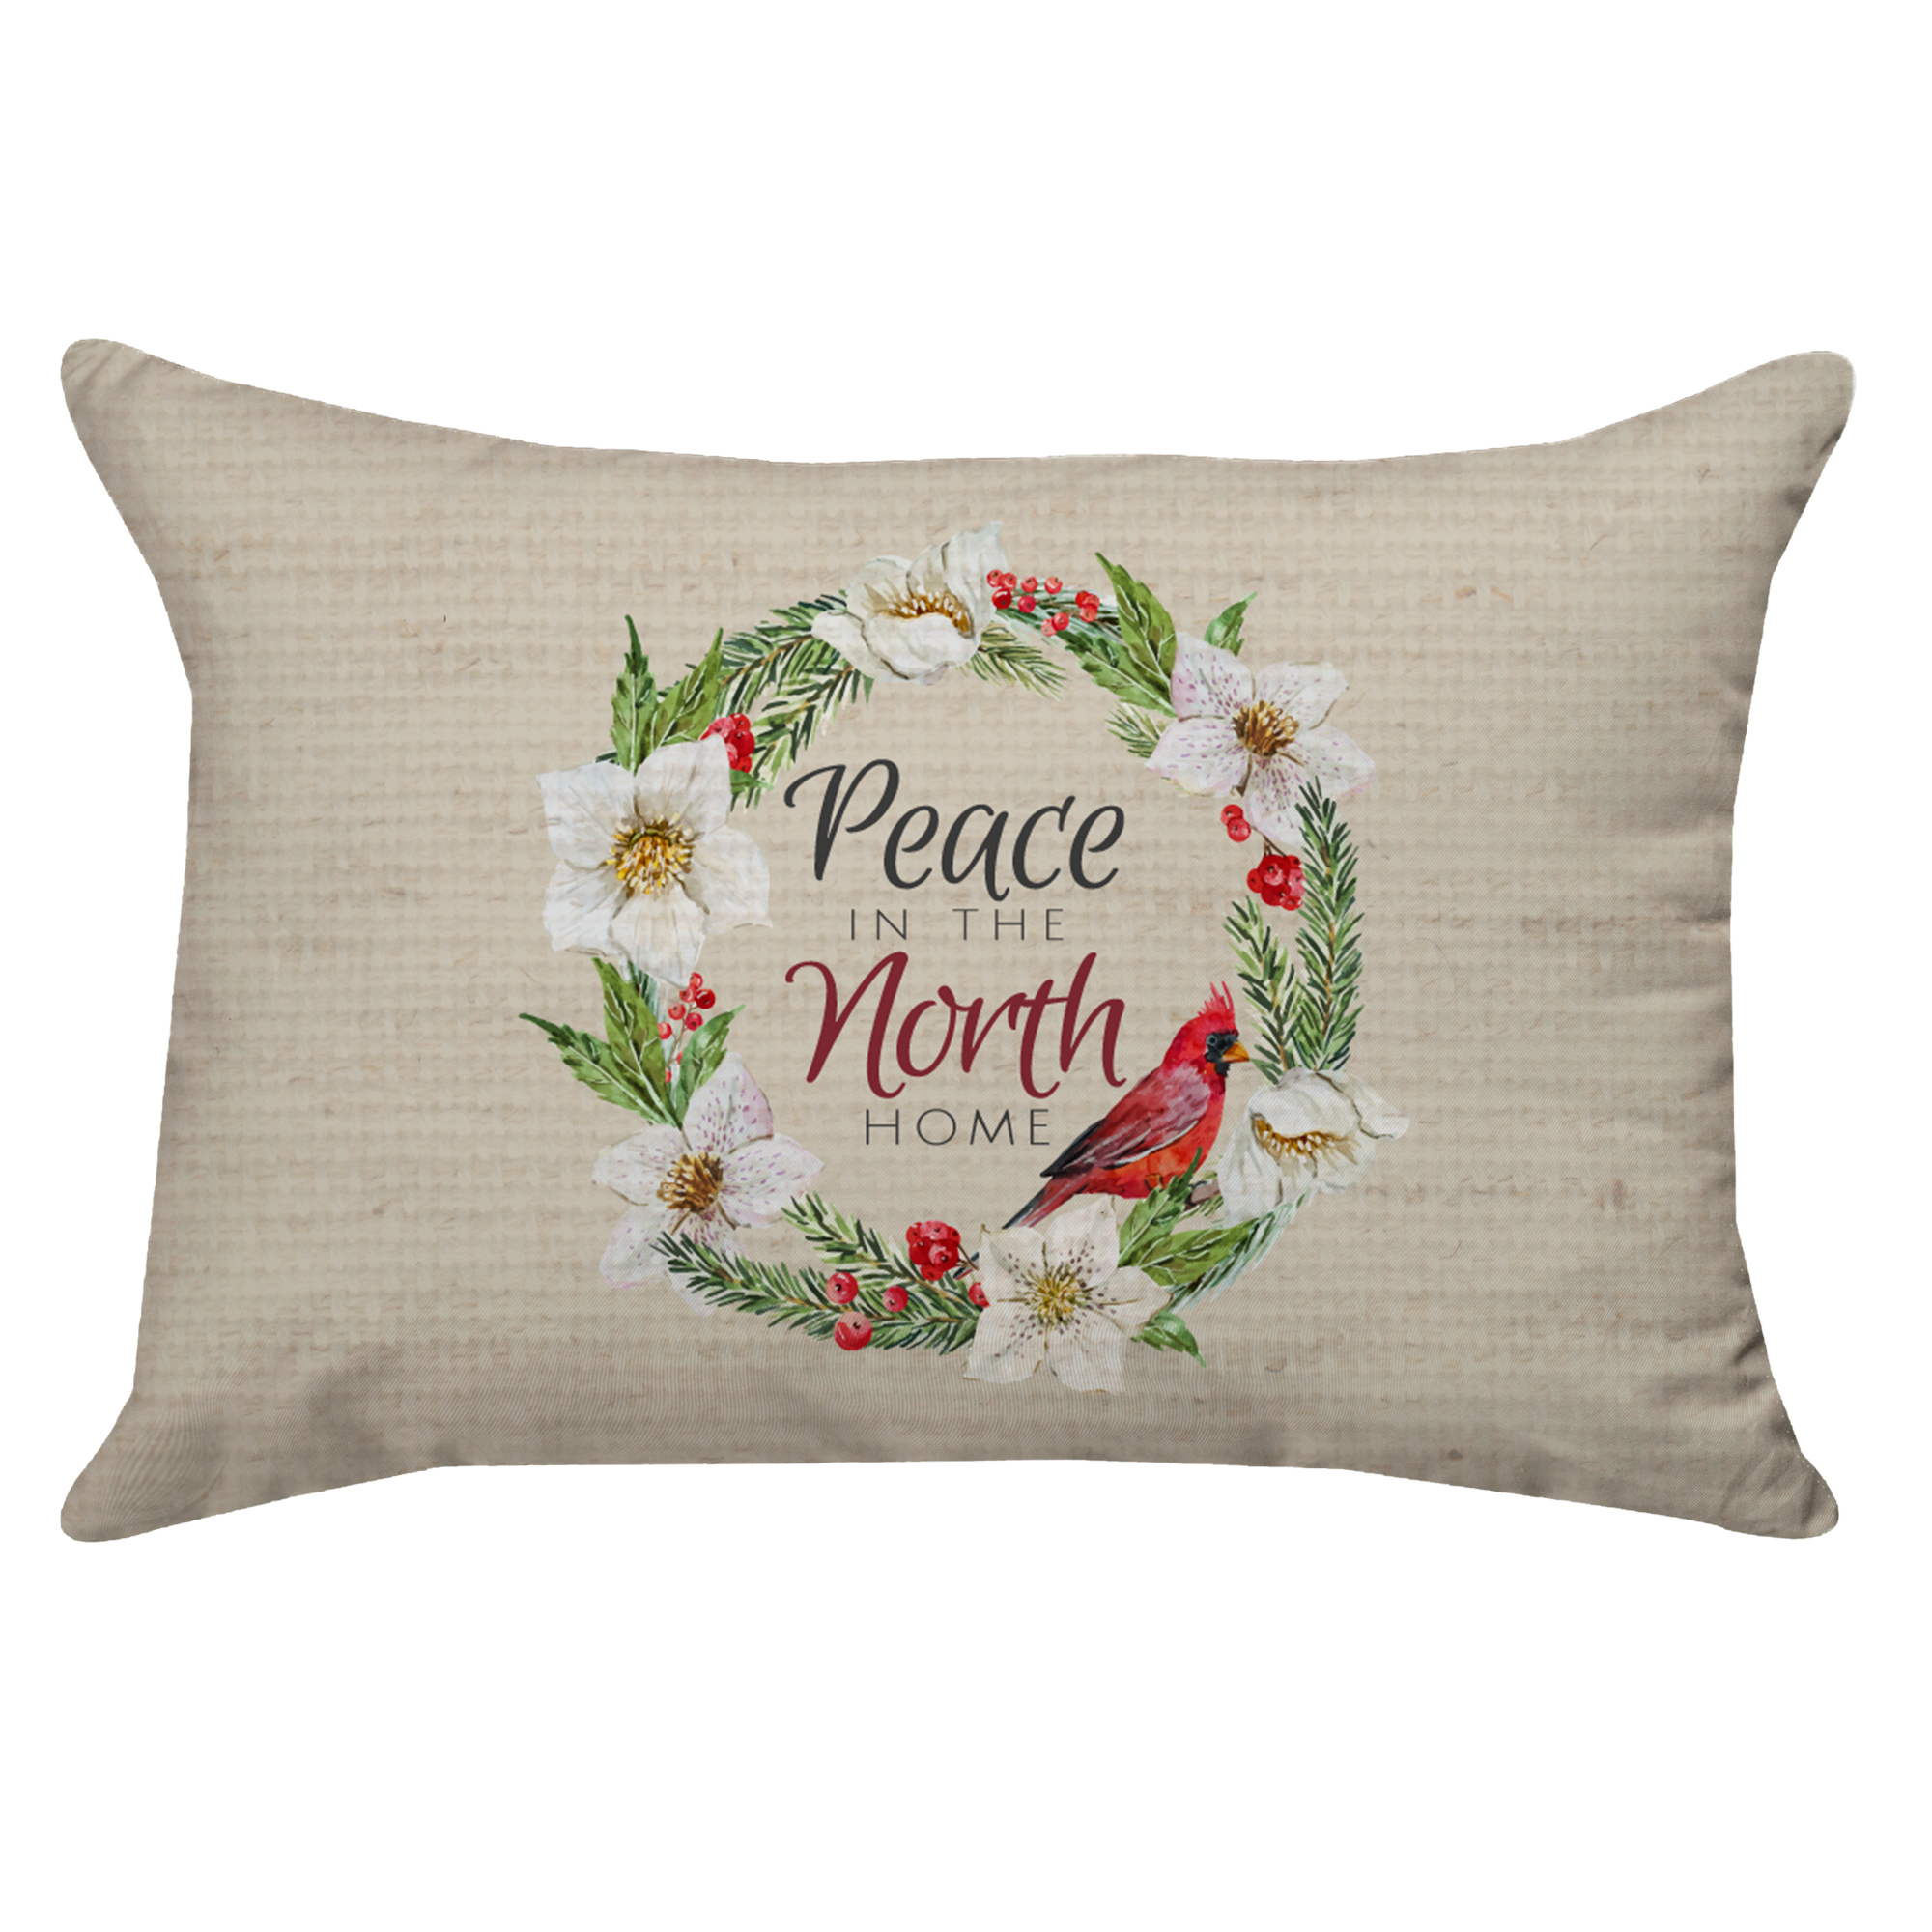 Personalized Cardinal Wreath Peace Poplin Rectangular Throw Pillow in Green/Red